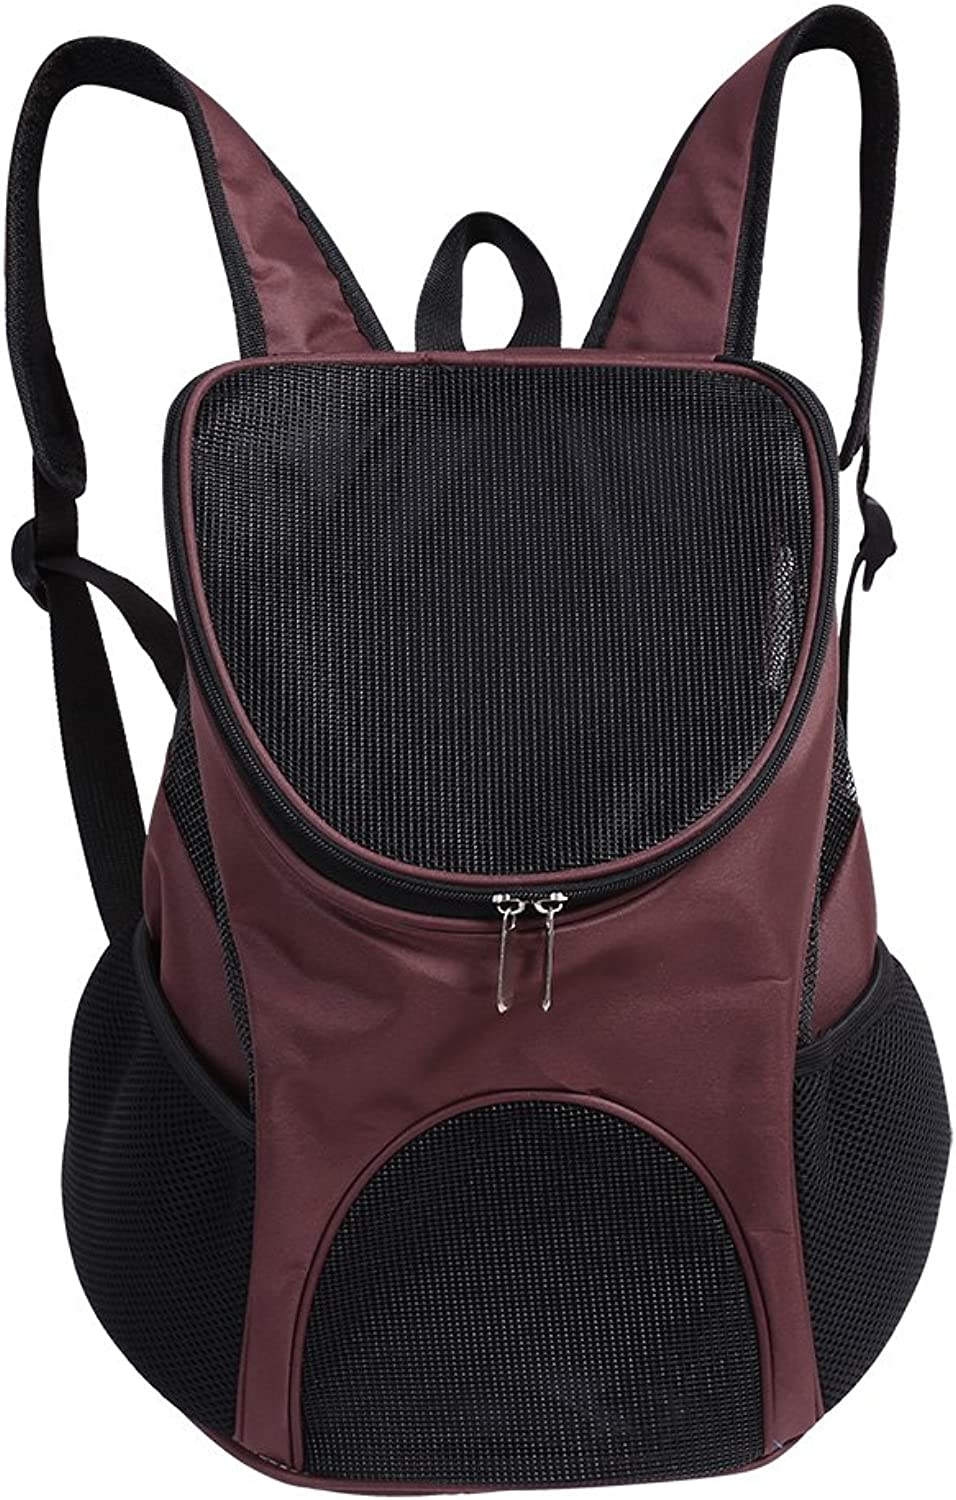 Filfeel Pet Backpack, Outdoor Cat Dog Puppy Travel Carrier Ventilated Mesh Double Shoulder Bag (Coffee)